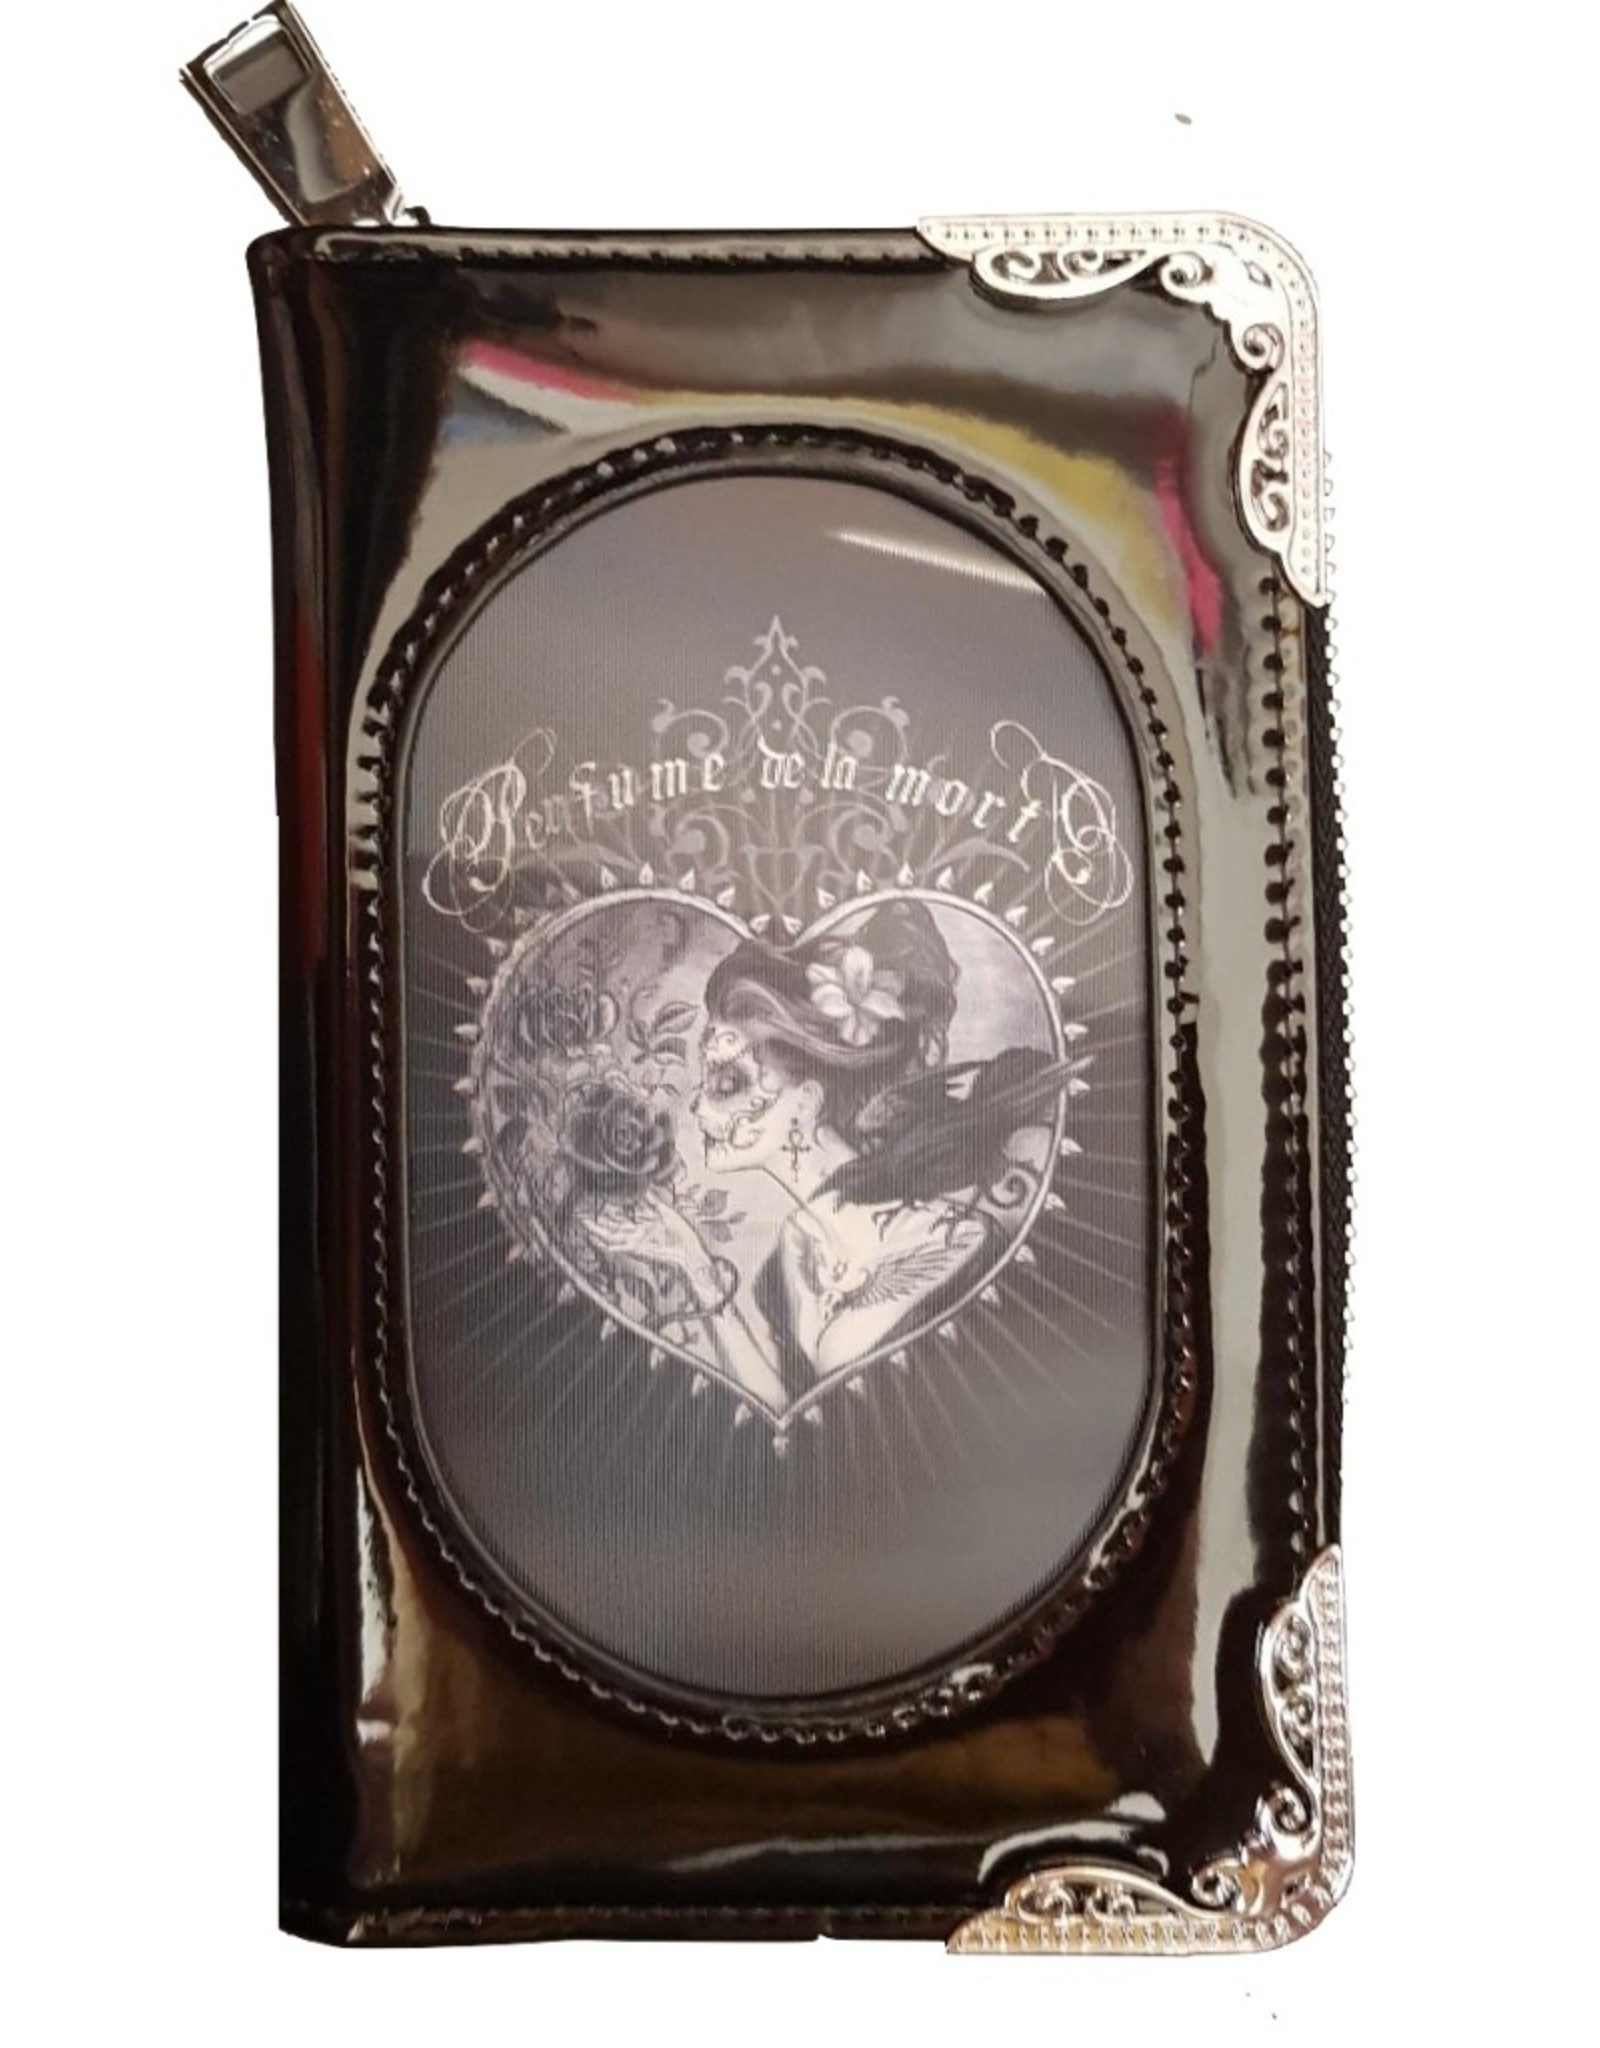 Alchemy Gothic and Steampunk wallets - Alchemy 3D lenticular purse Perfume De La Mort